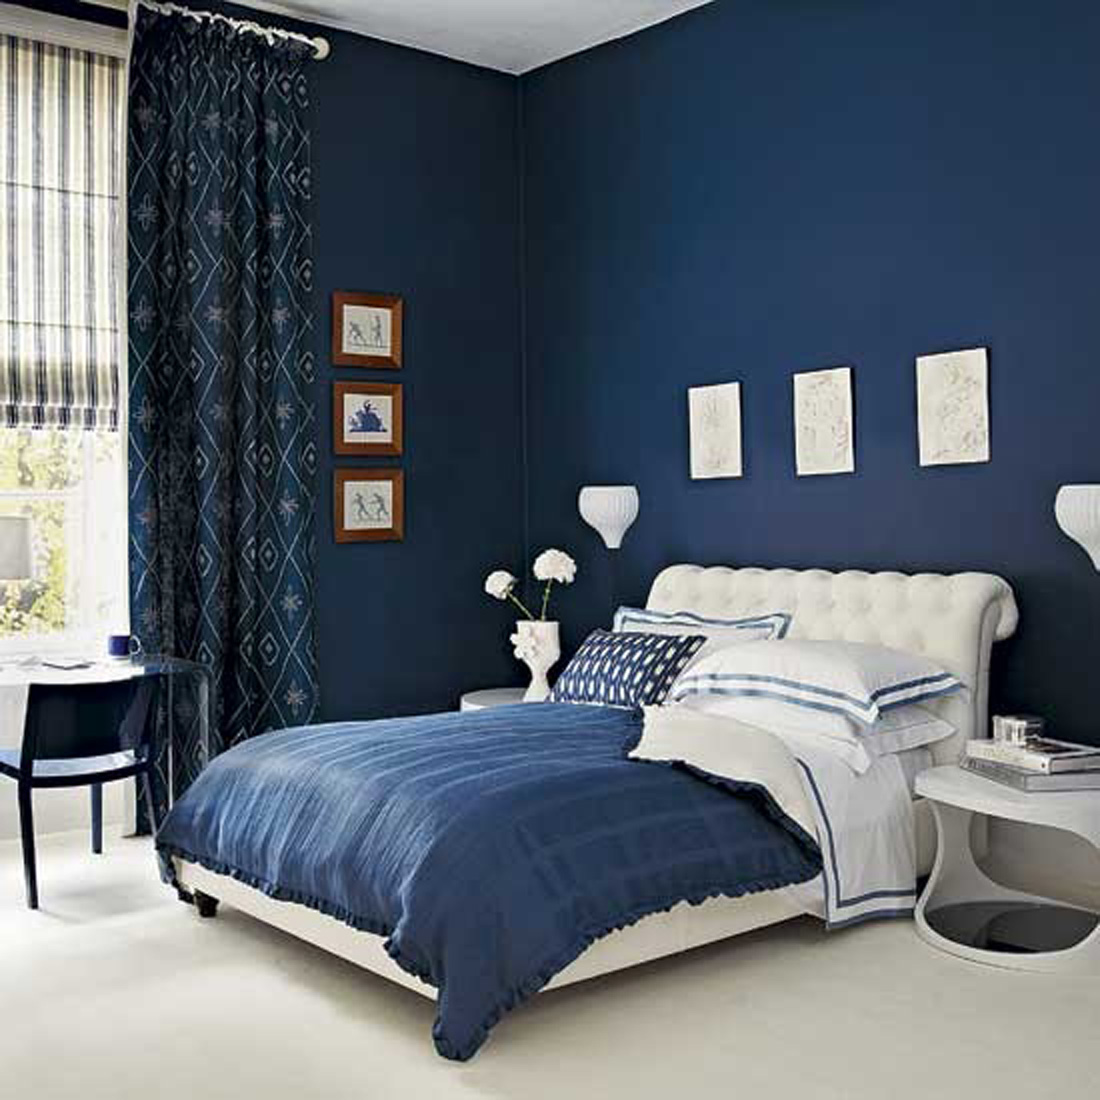 Wondrous 15 Beautiful Dark Blue Wall Design Ideas Home Remodeling Inspirations Genioncuboardxyz